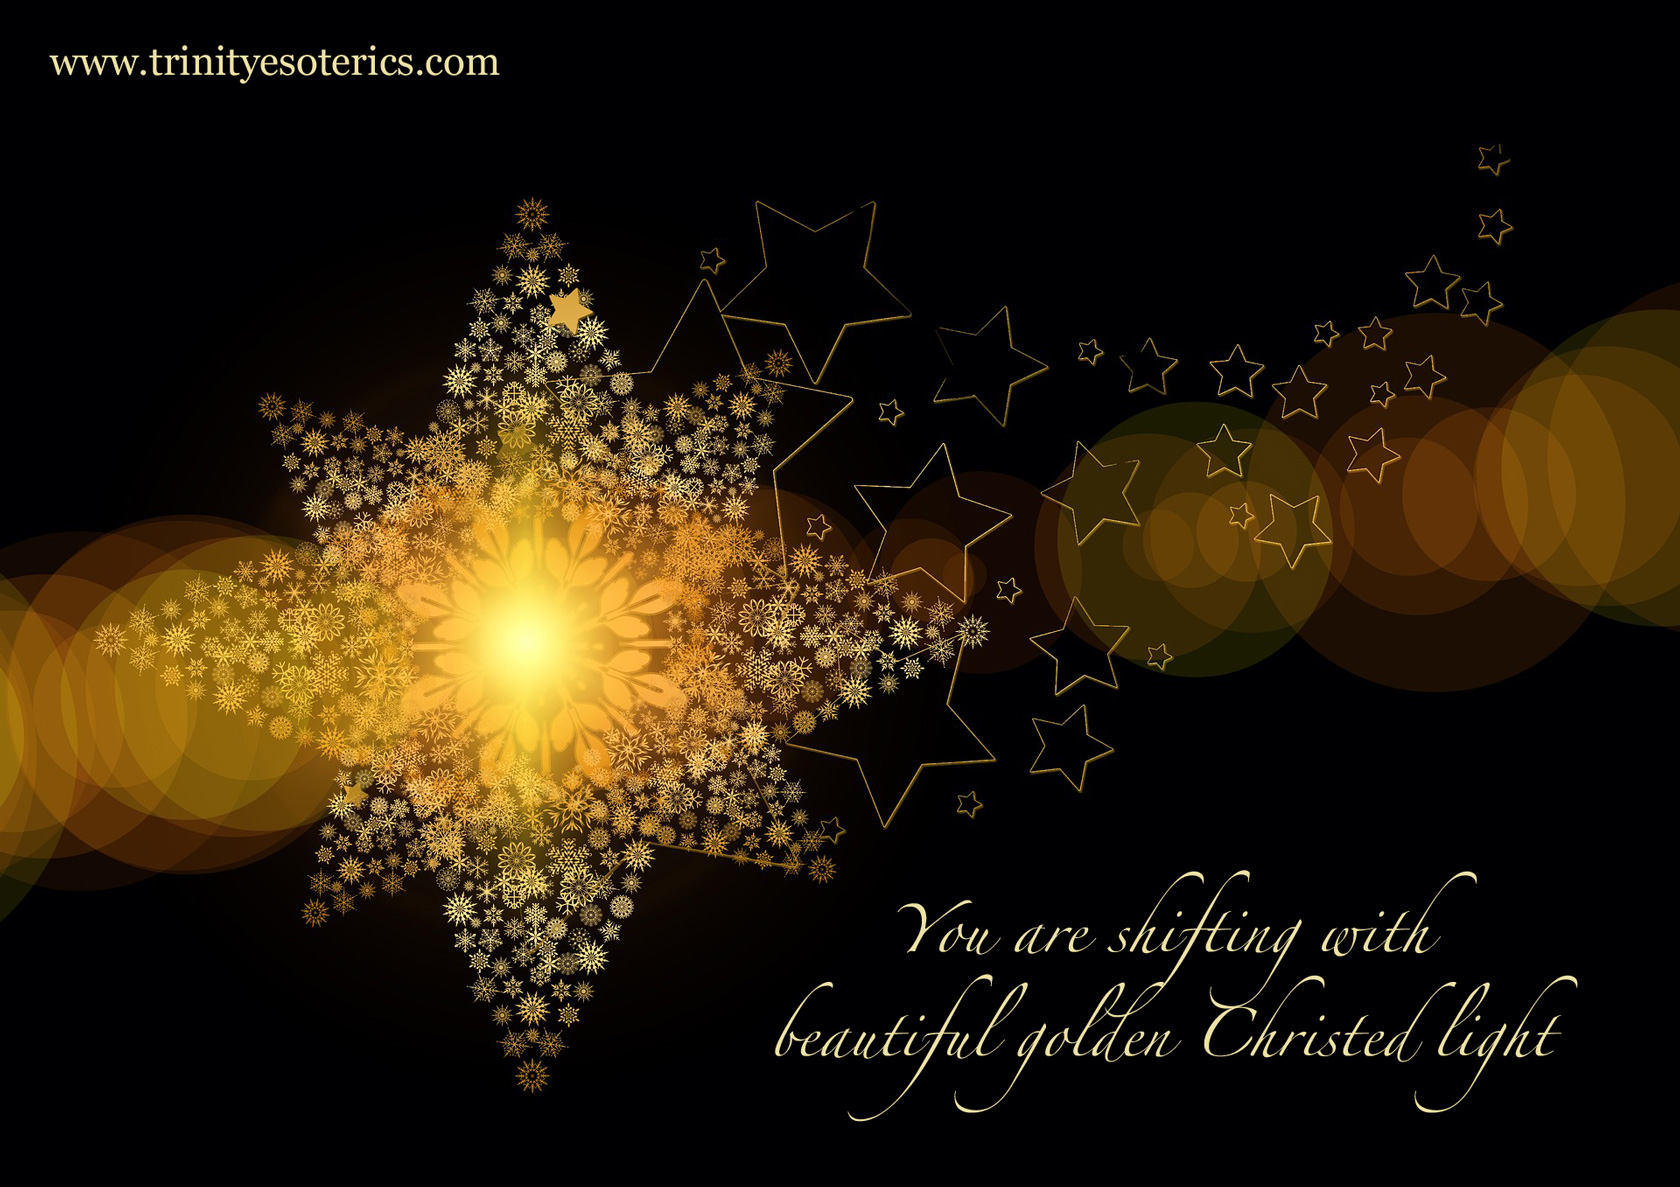 sparkling golden star trinity esoterics